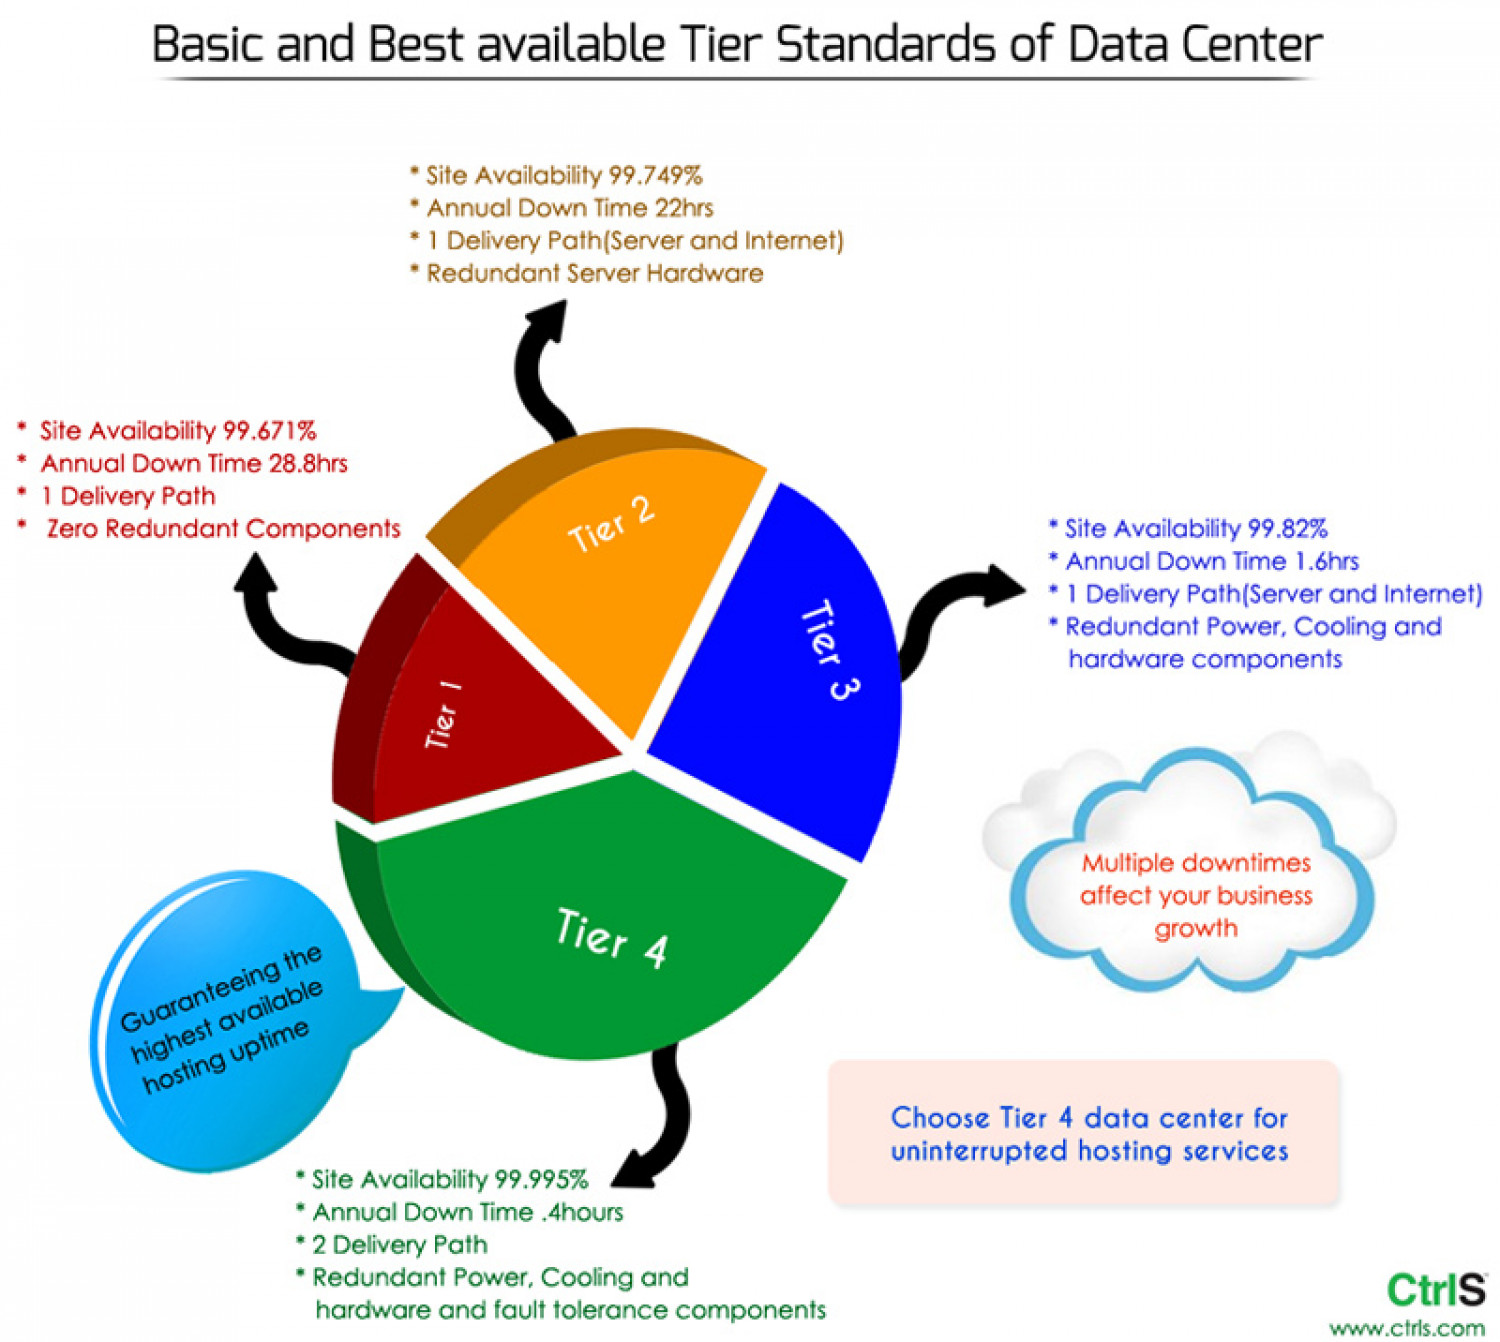 Basic and best available Tier Standards of Data Center Infographic